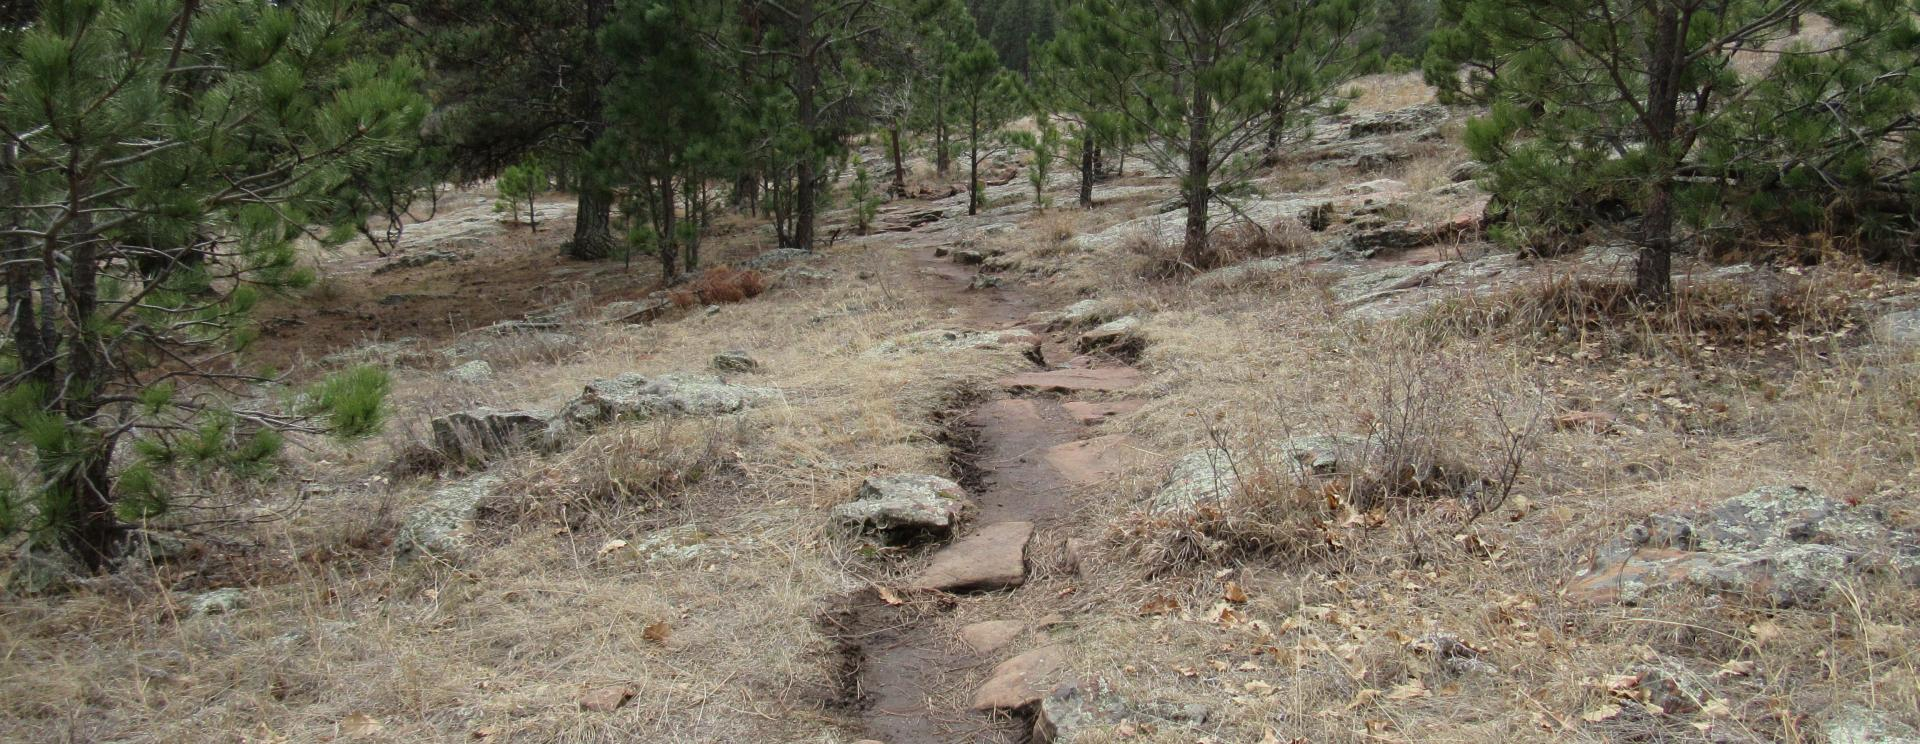 3 Otherworldly Hikes You Can Do in One Day in Custer State Park